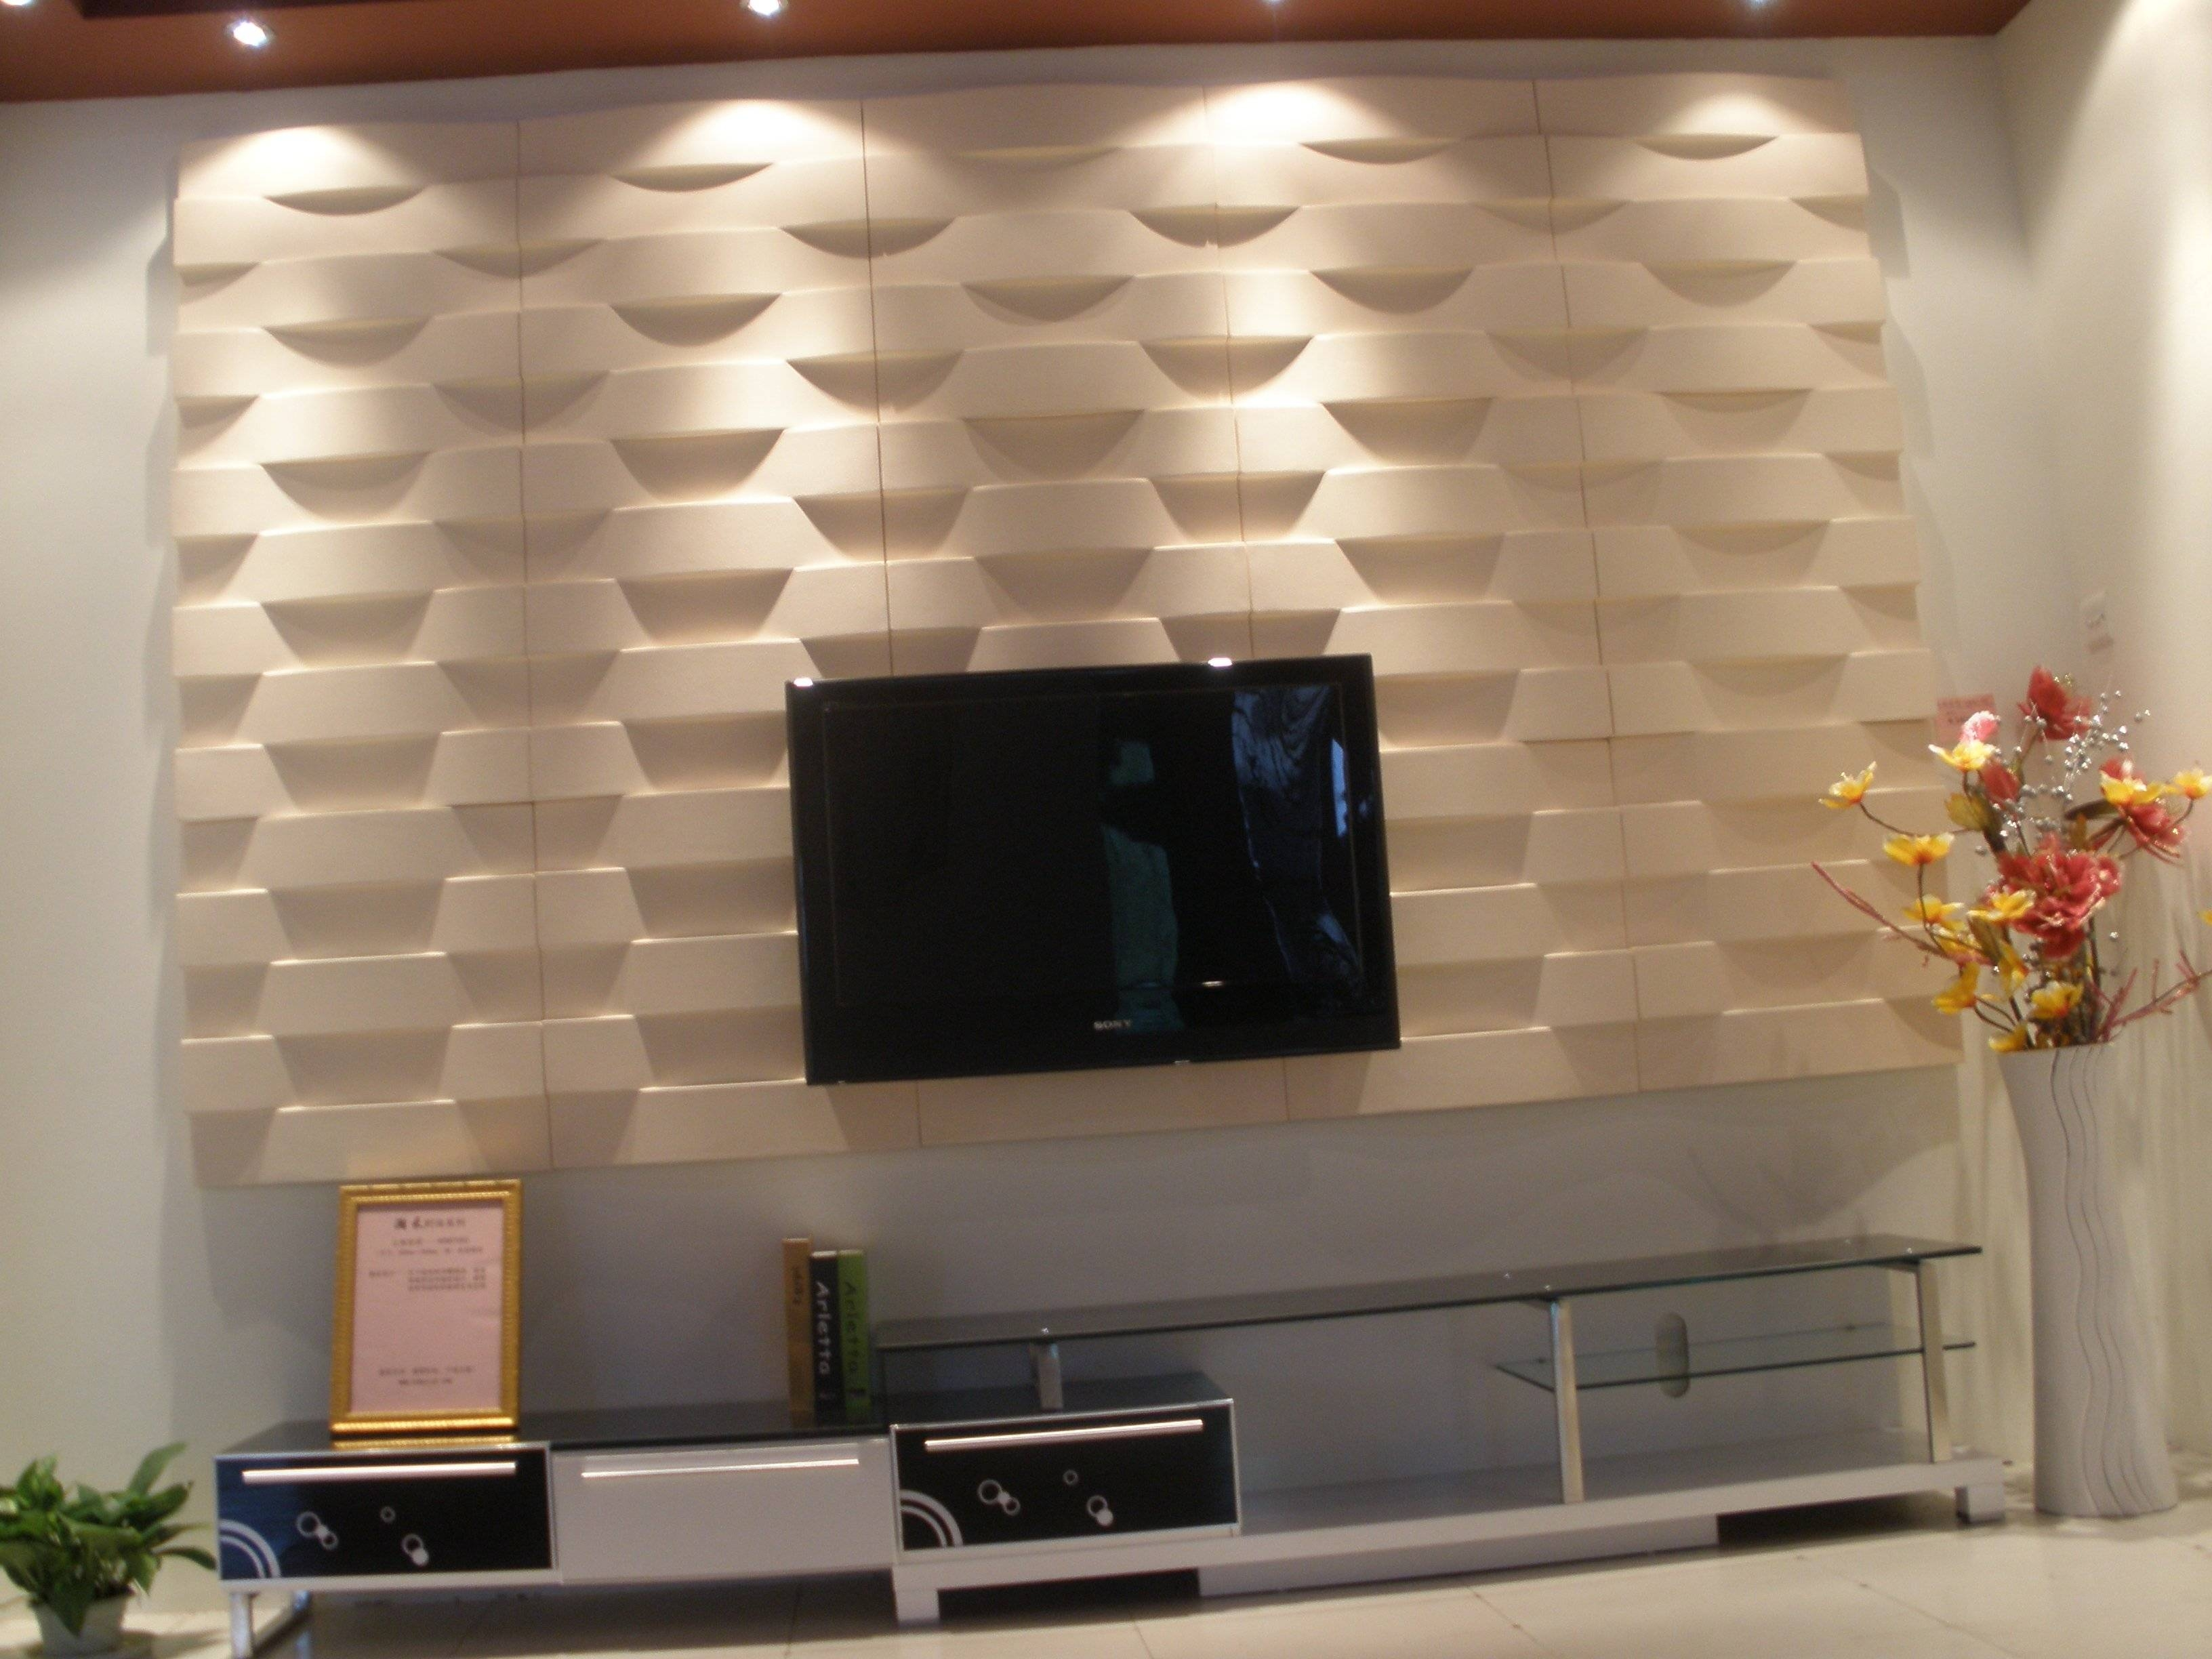 Wall Coverings Home Decor Decoration Tiles Panels Boards Wood Within Most Recent 3d Wall Covering Panels (View 7 of 20)